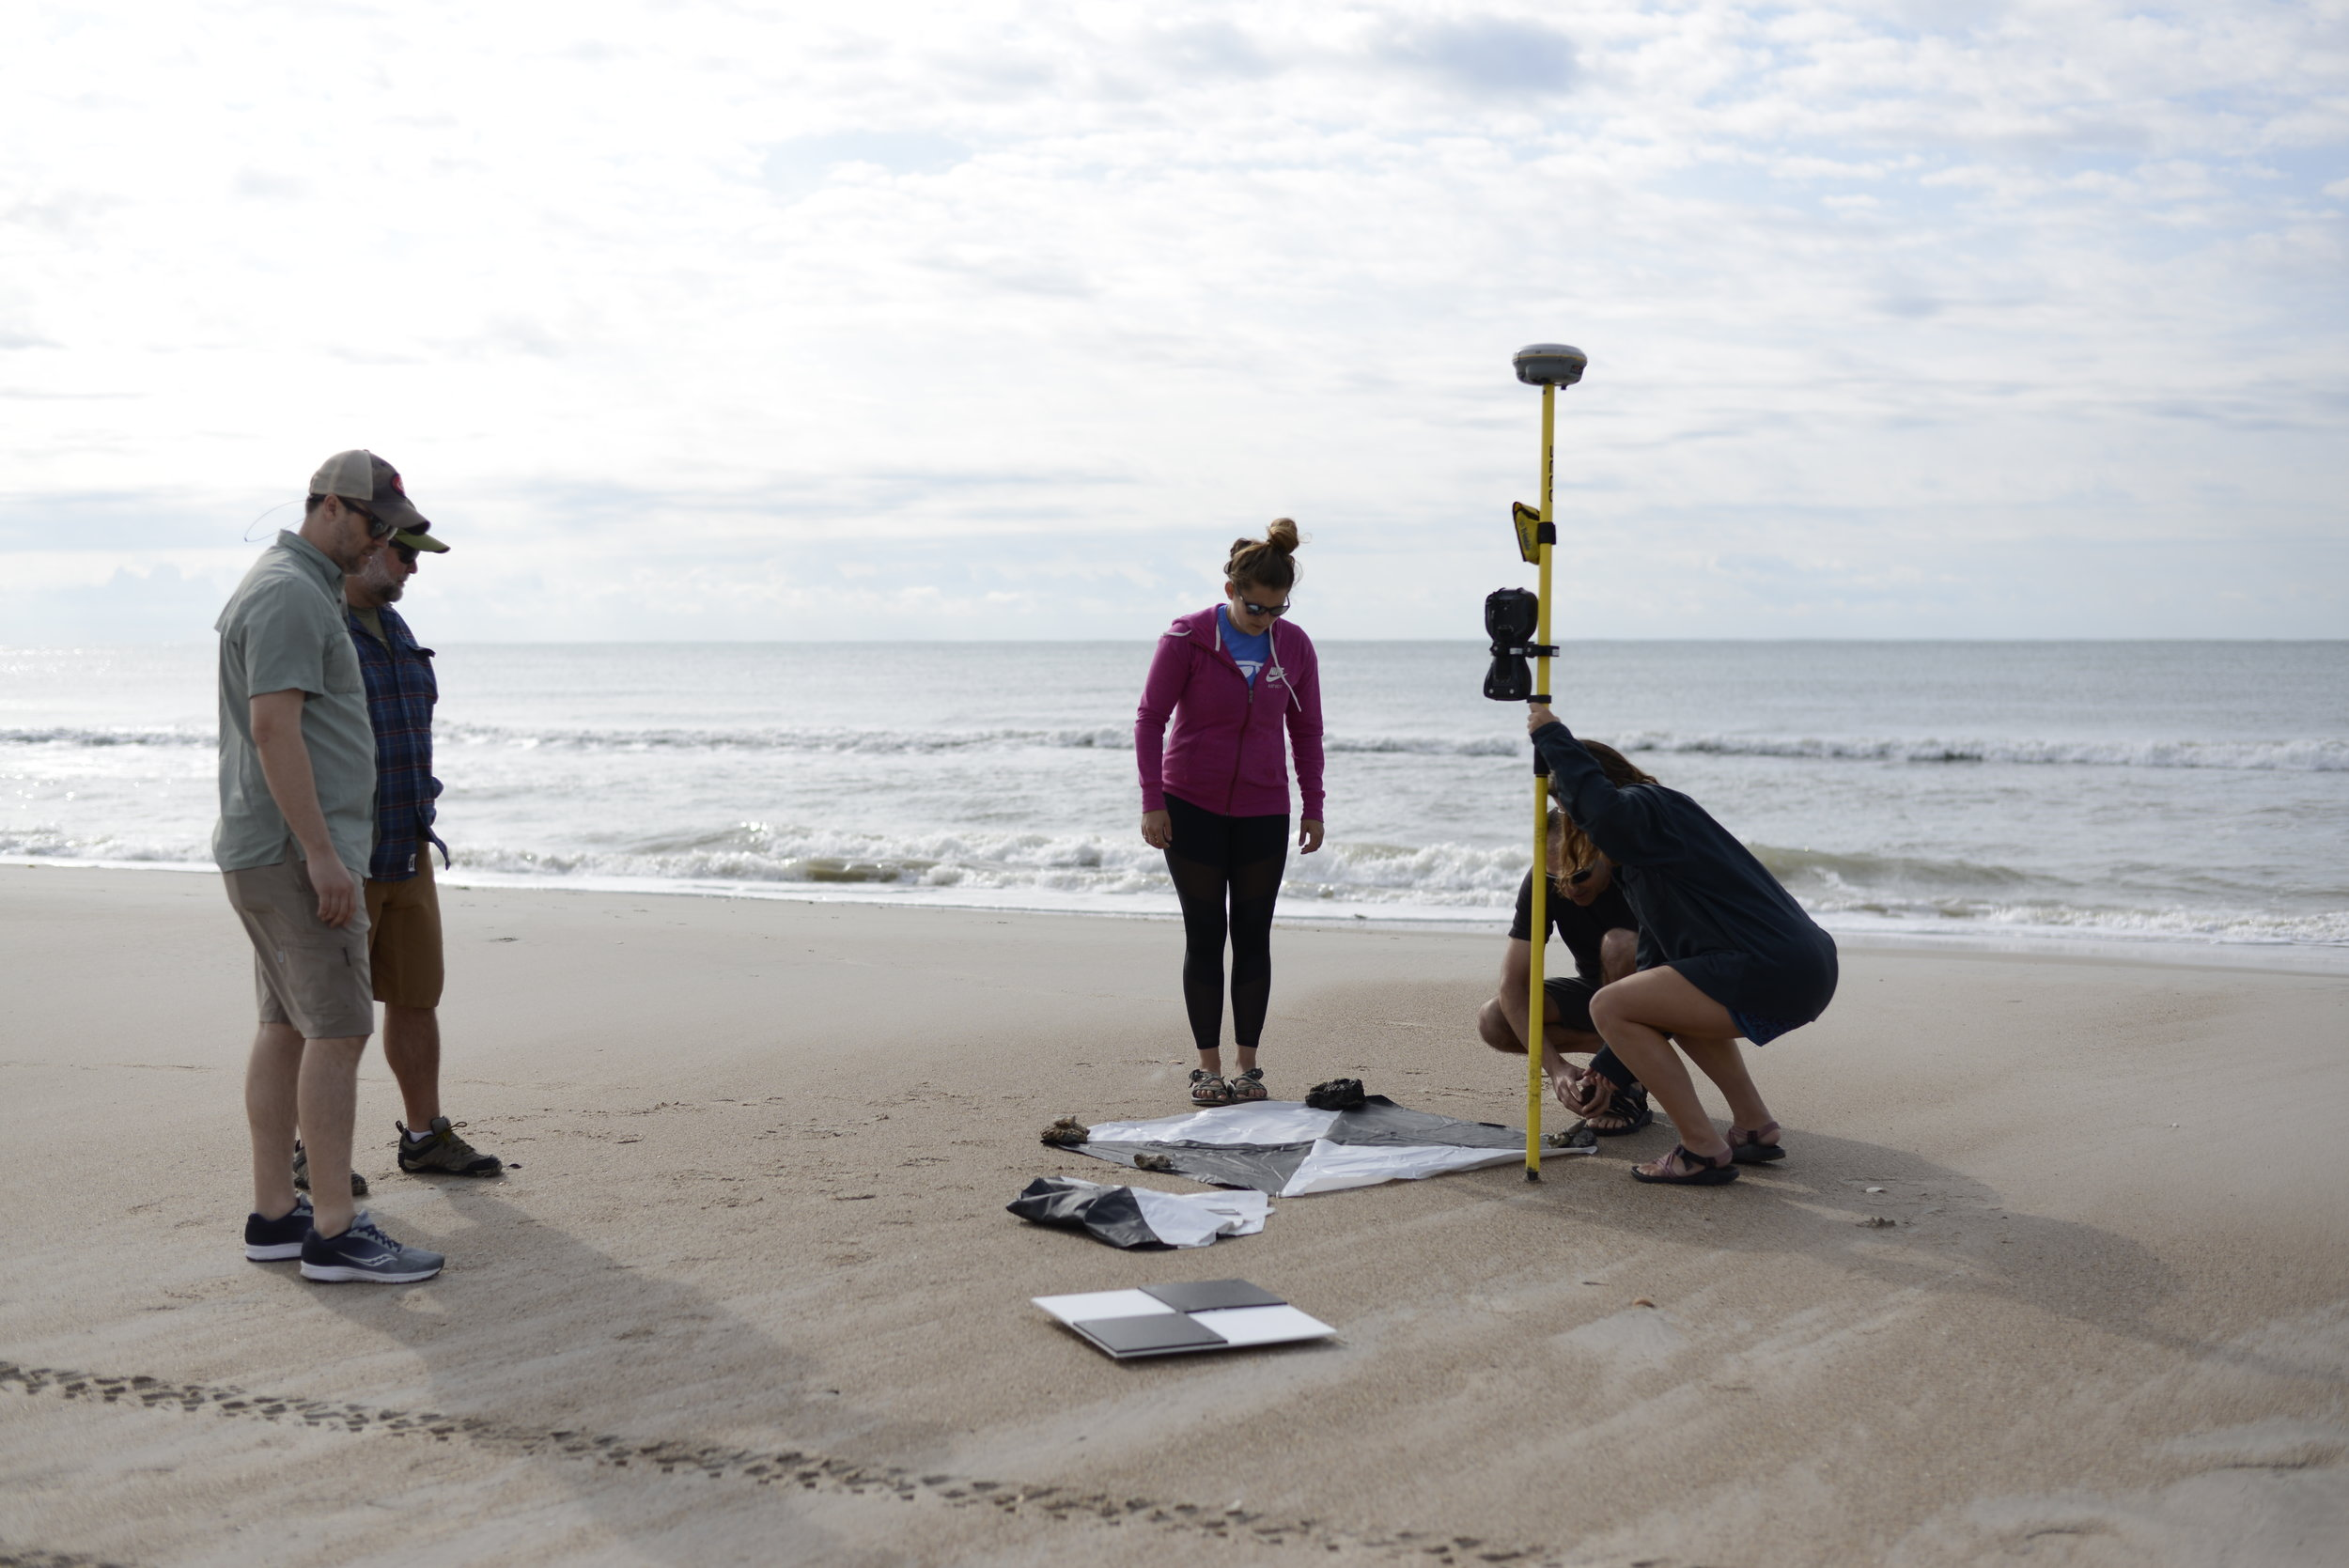 REDDIE - The Regional Drone Demonstration for Installations and Environment (REDDIE) is an extension of CONFIRM that encompasses Marine Corps Installations-East via Naval Facilities Command (NAVFAC). The focus remains on demonstrating the benefits of UAS in DoD natural resource mangement.